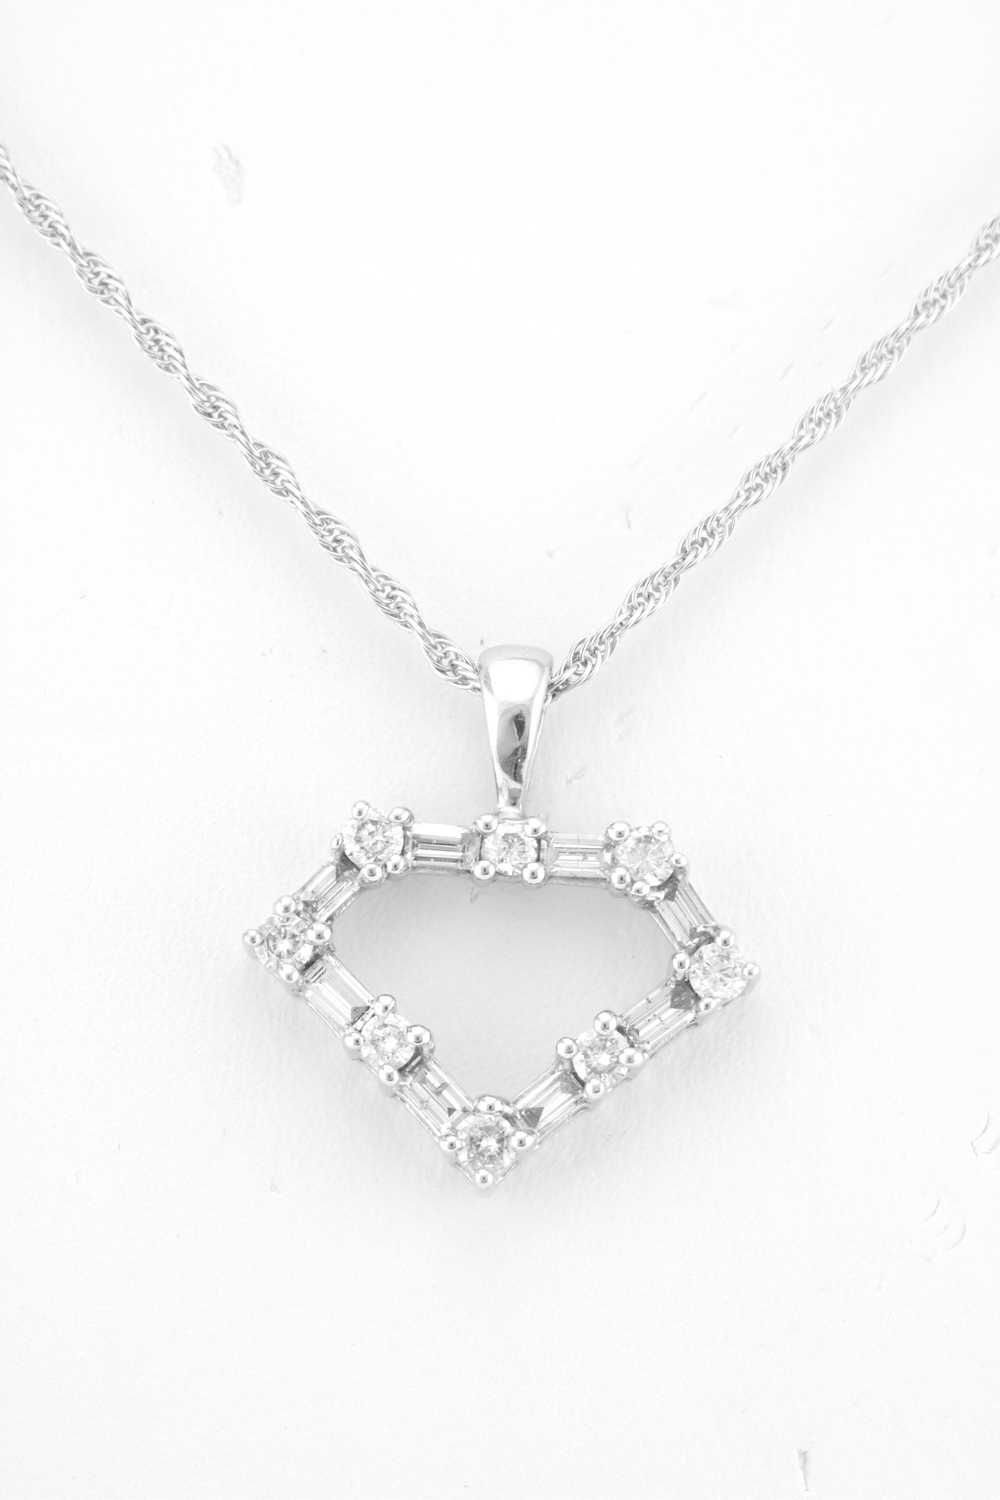 gold cut pendants brilliant baguette jewellery diamond pendant in gorgeous white and goregous necklaces